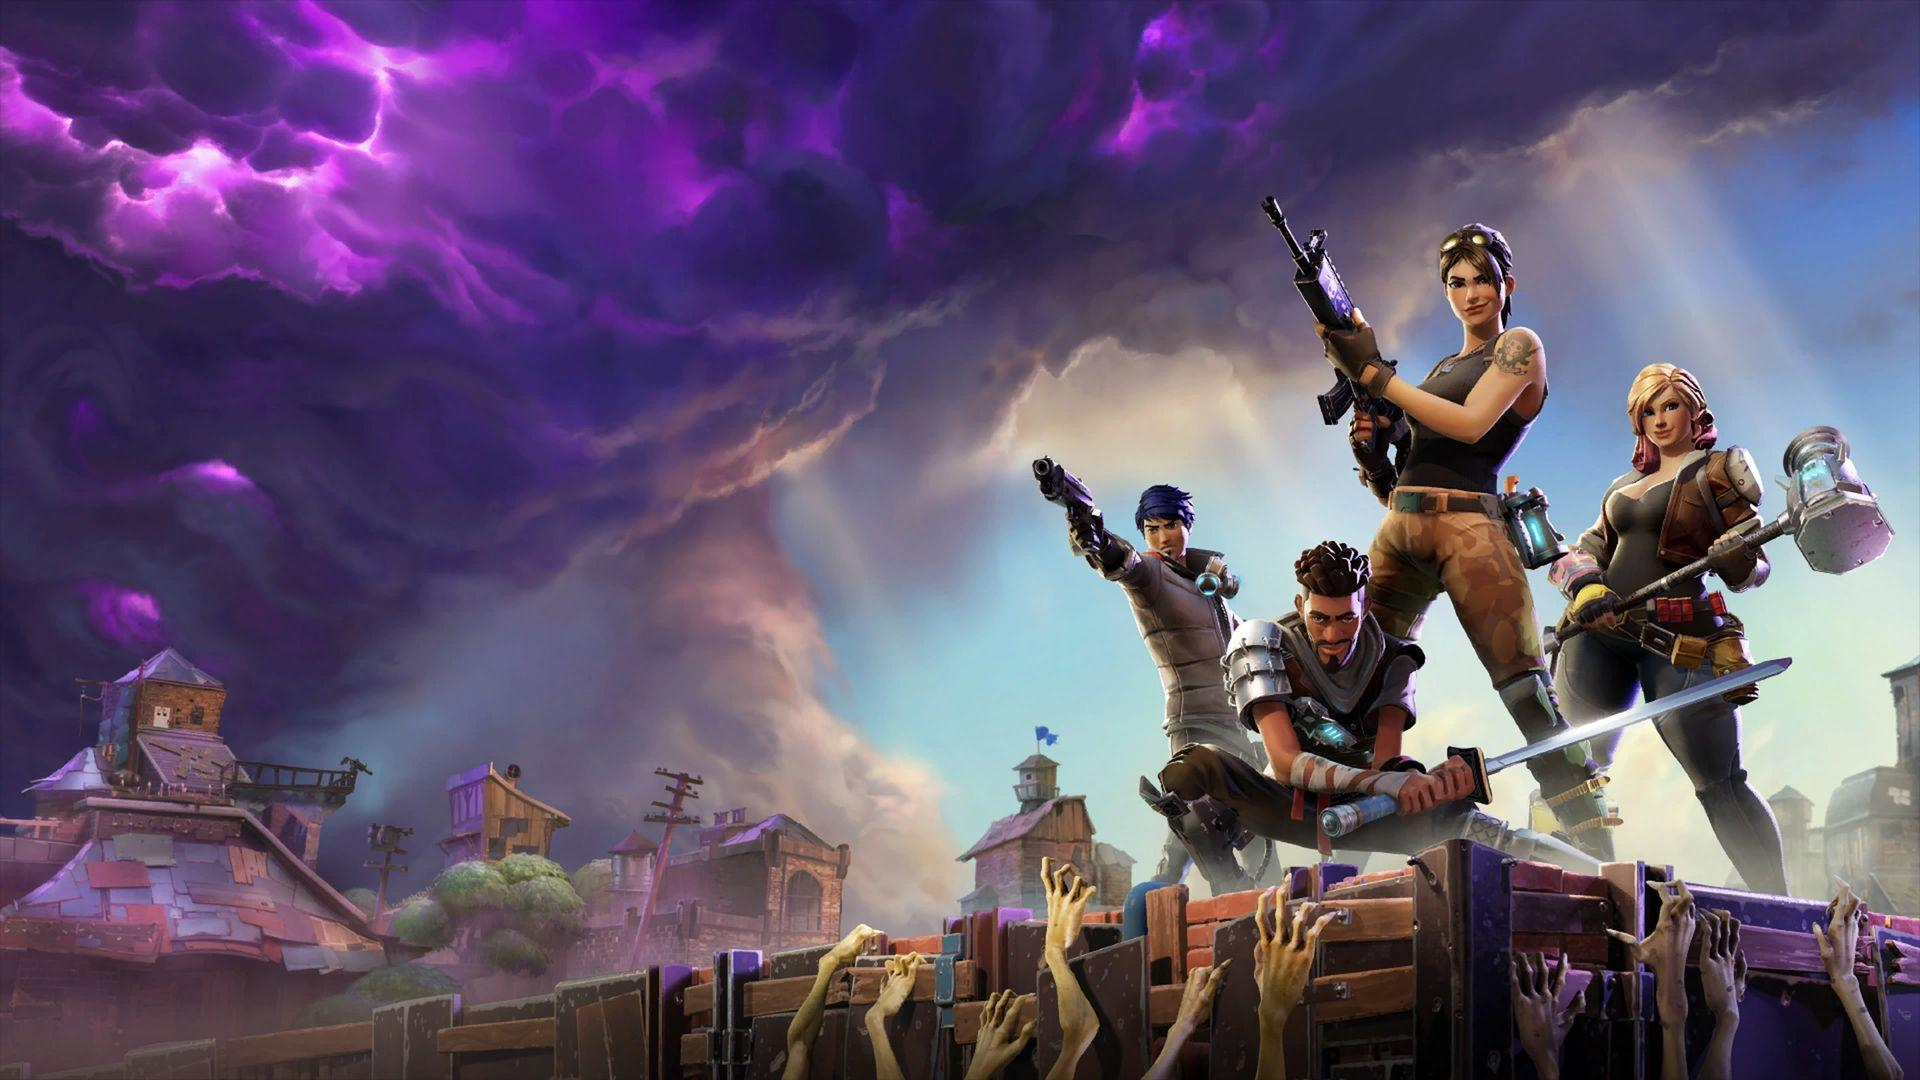 Fortnite Battle Royale Wallpapers Wallpaper Cave